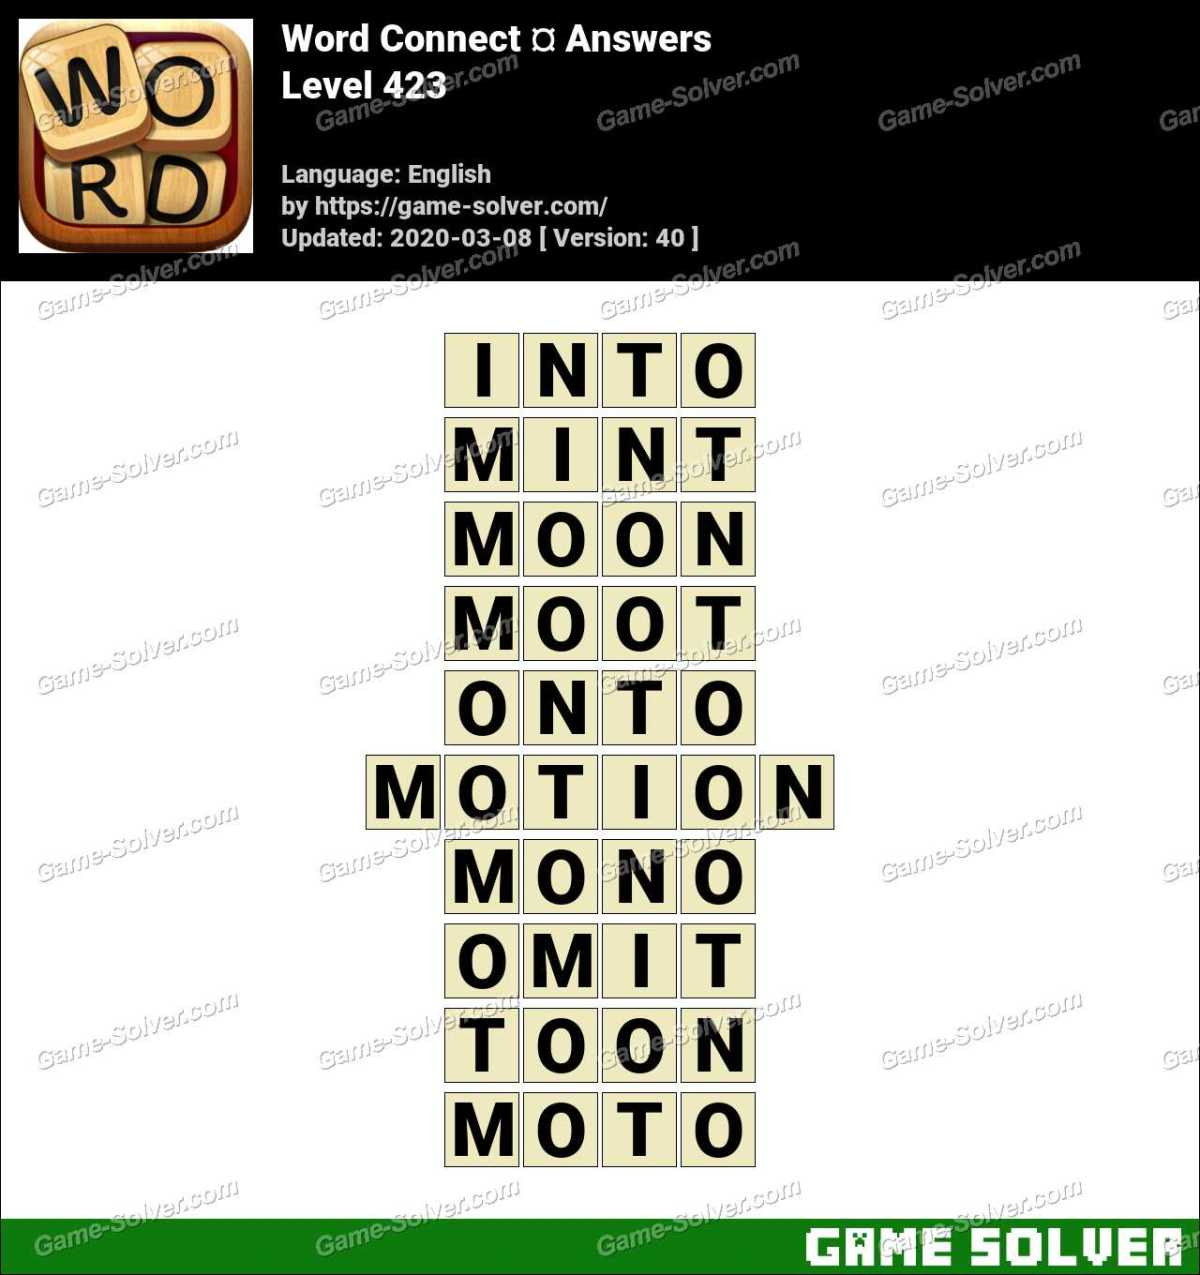 Word Connect Level 423 Answers